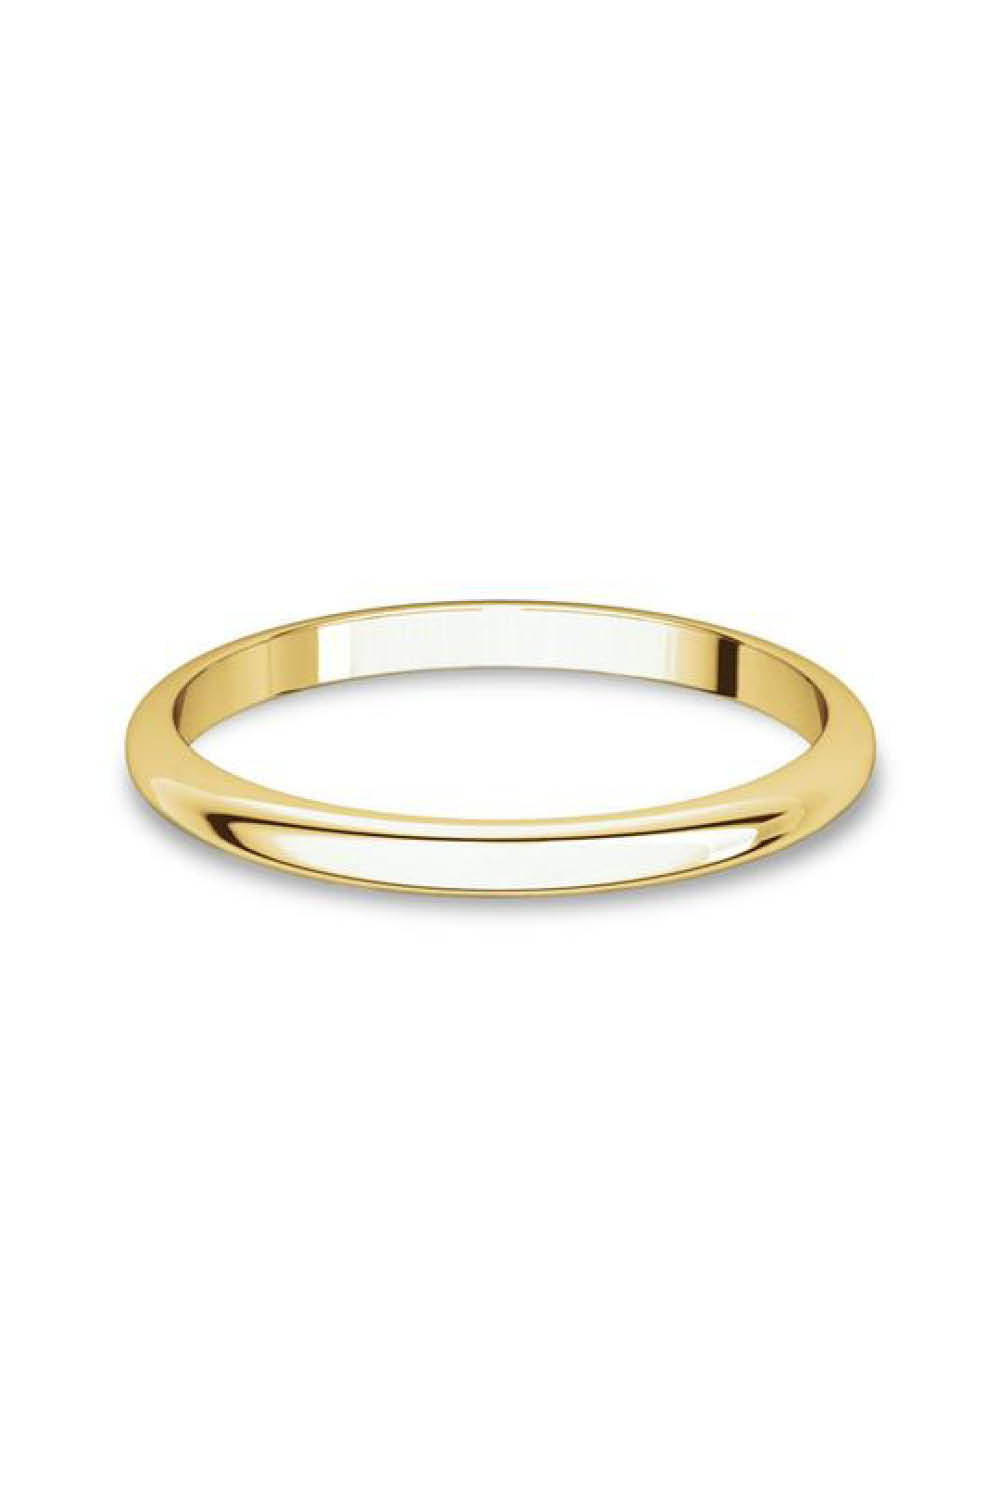 Reclaimed Classic Ring in Yellow Gold